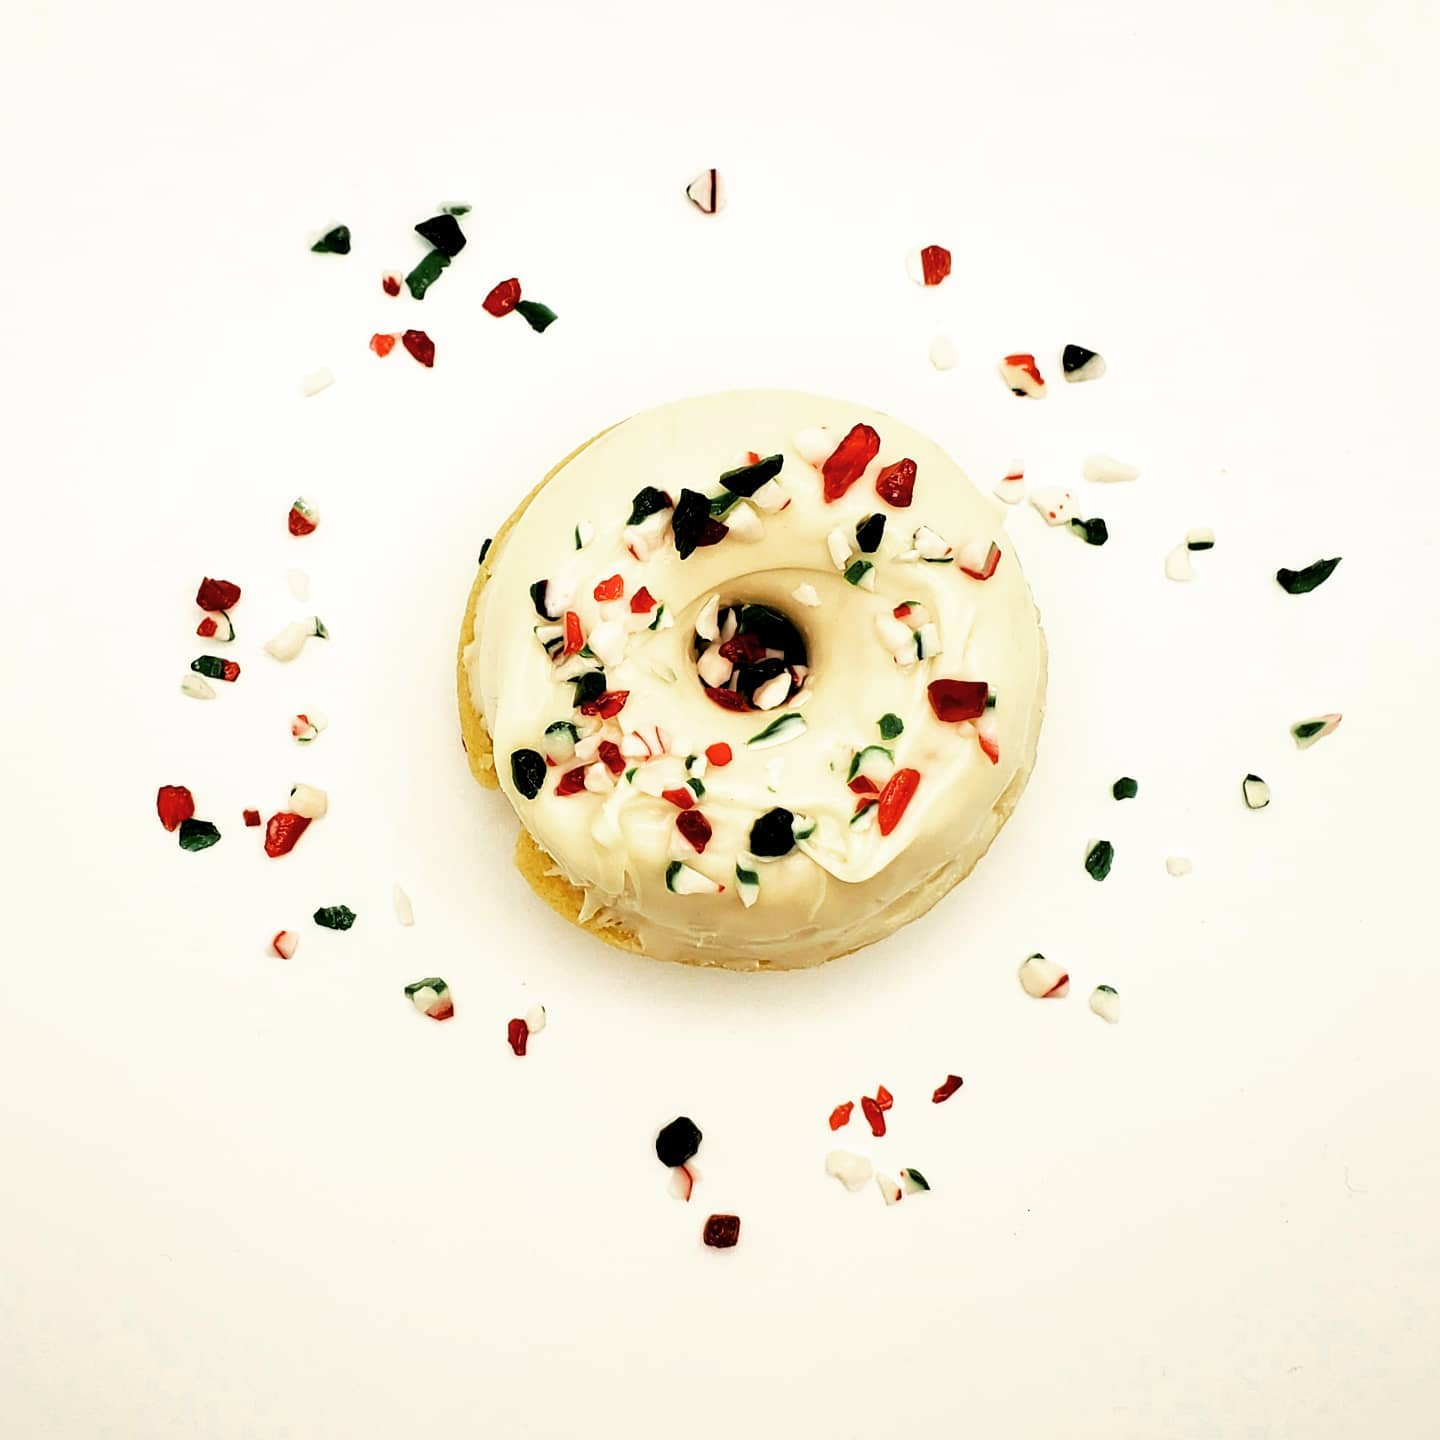 A doughnut with white icing and crushed candy canes on a white background.